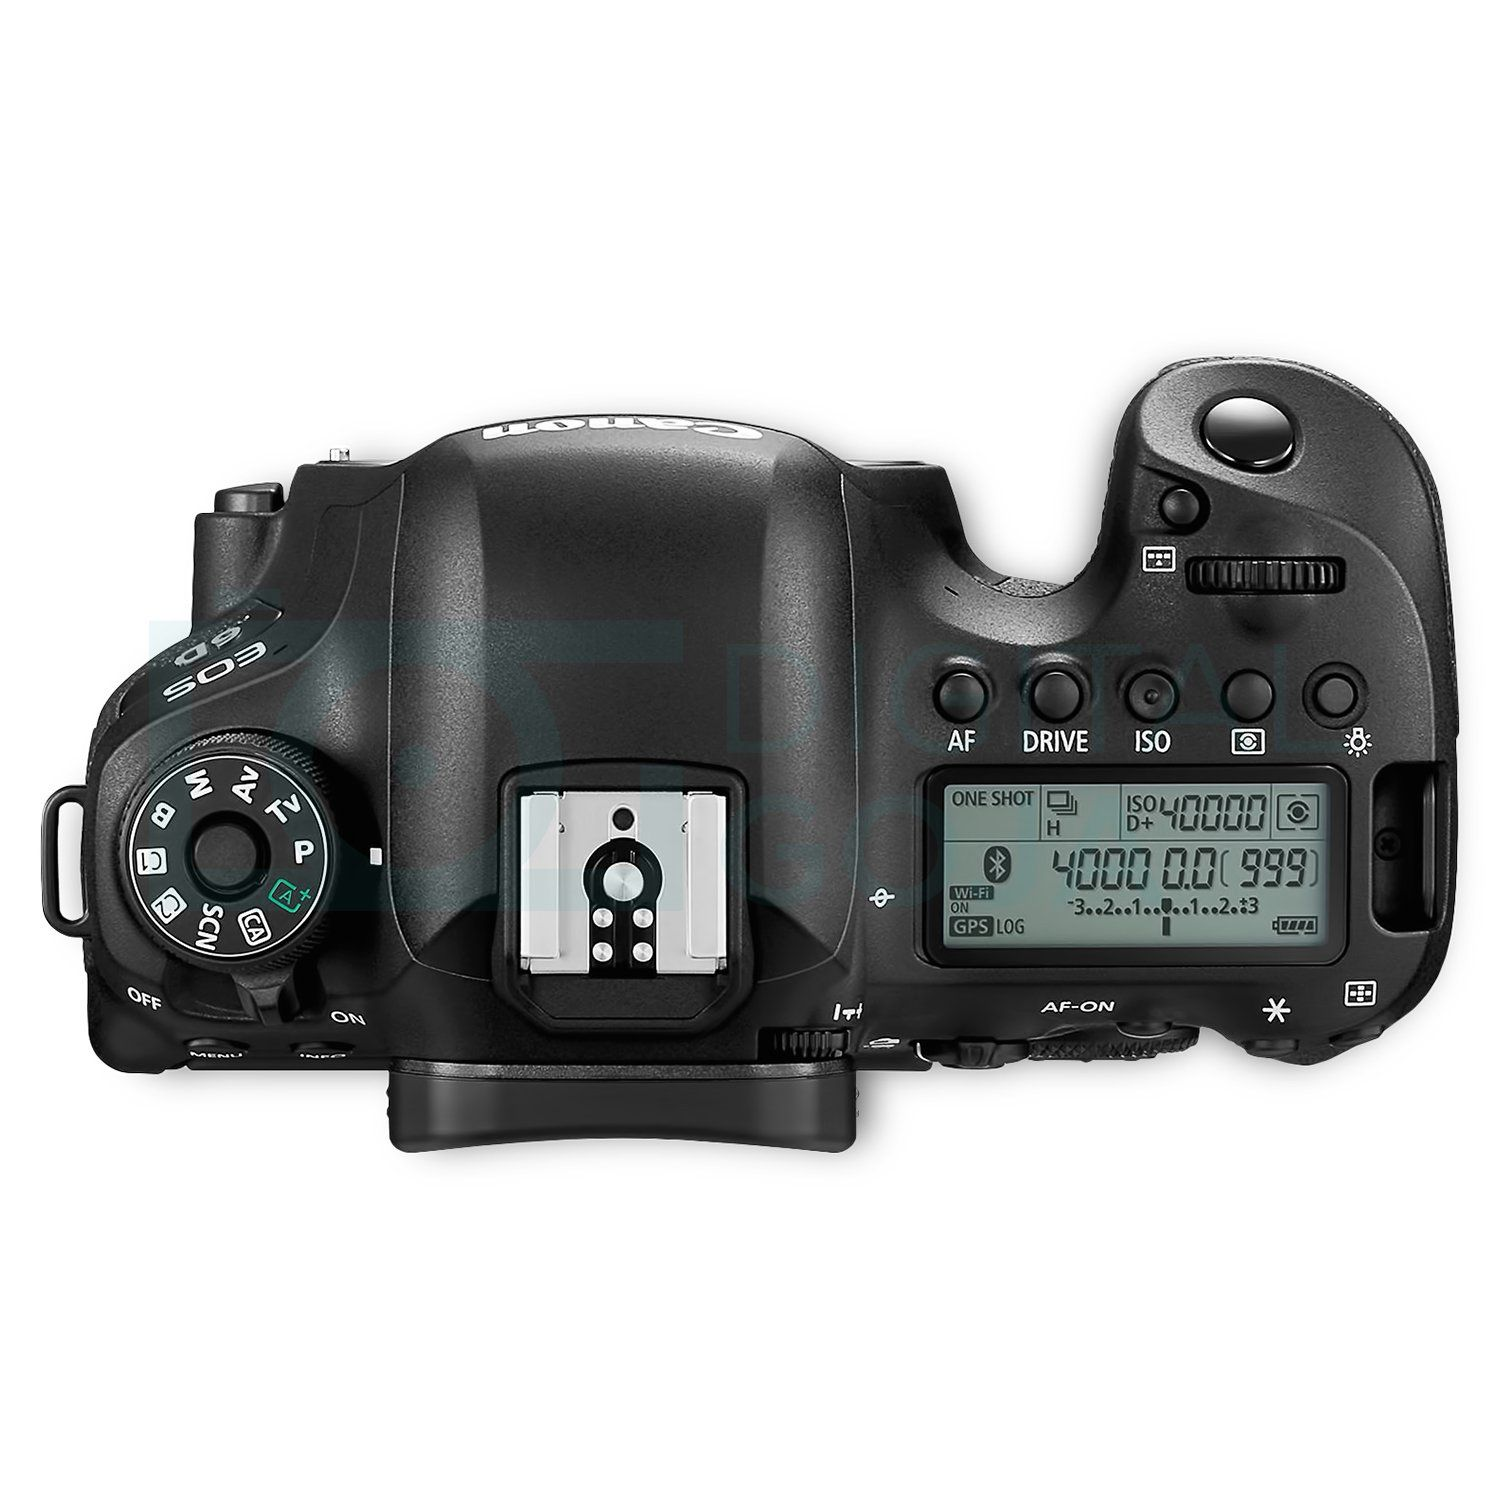 Canon EOS 6D Mark II DSLR Camera Body w/ Complete Photo and Travel ...